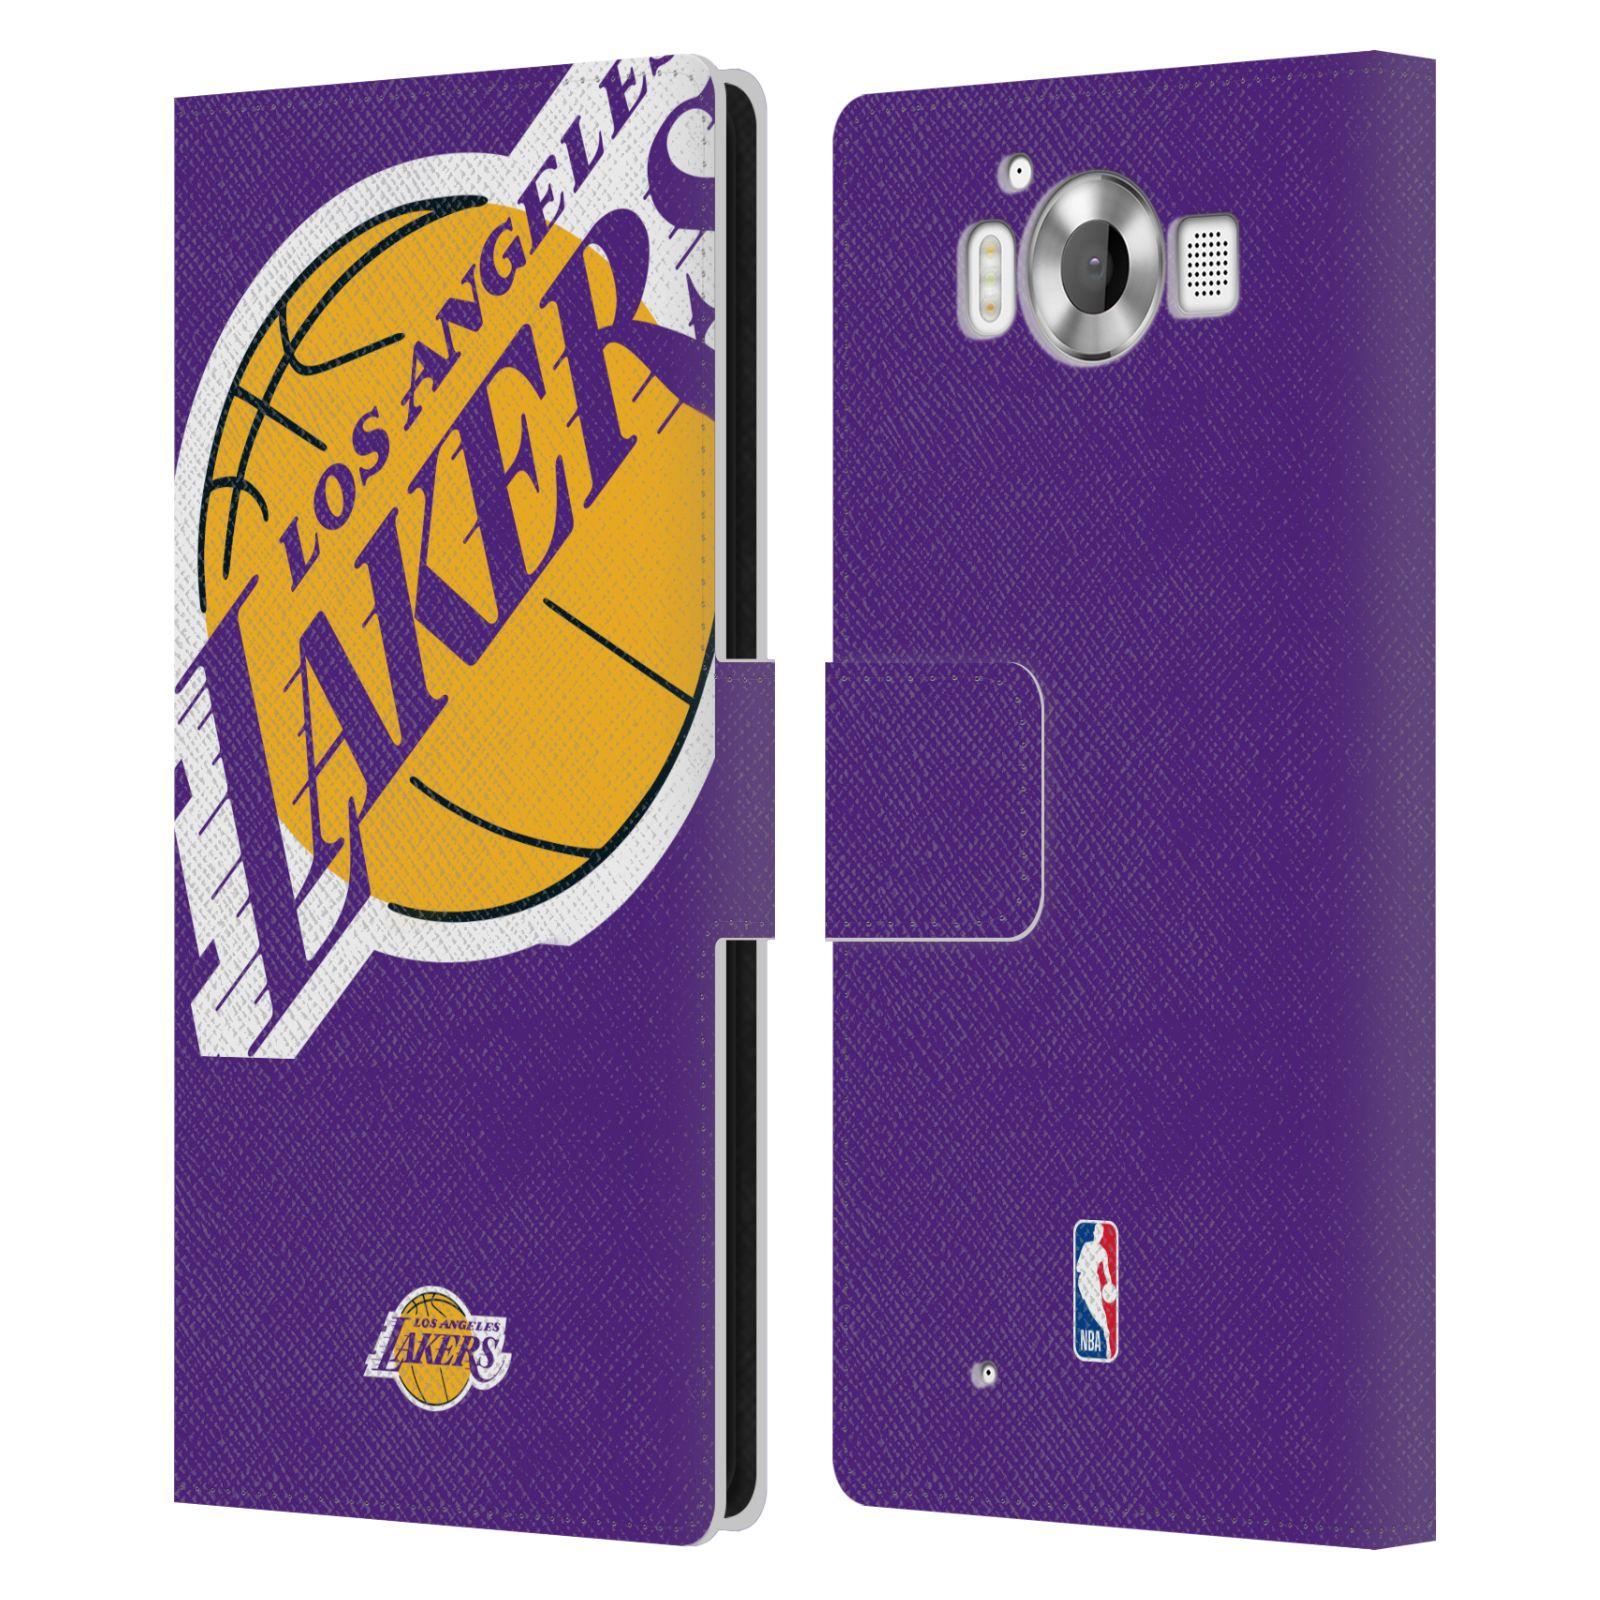 Pouzdro na mobil Nokia Lumia 950 - Head Case - NBA - Los Angeles Lakers velký znak